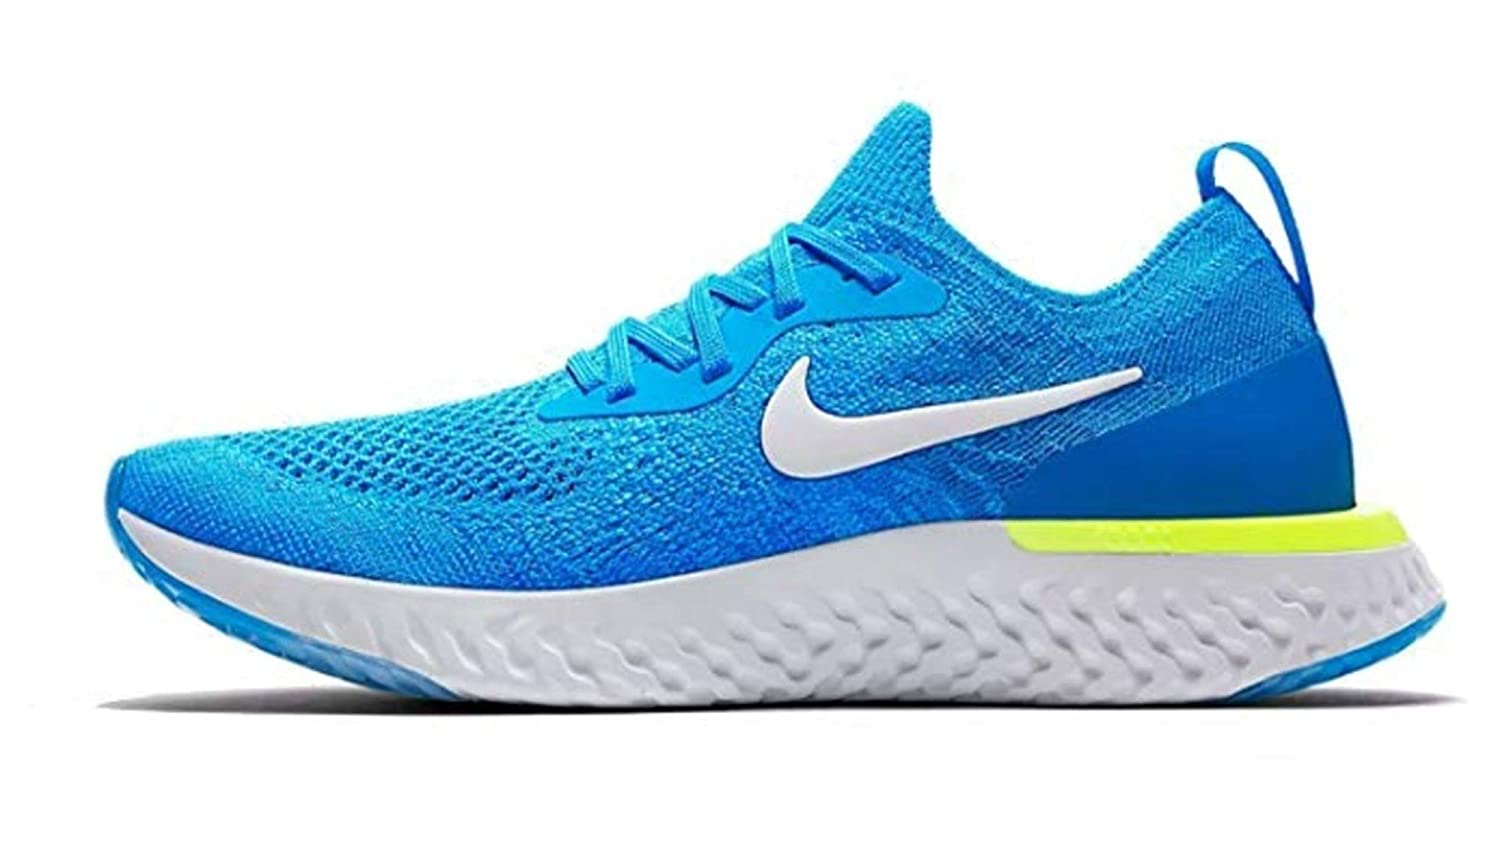 separation shoes 06442 266c3 Amazon.com | Nike Kids Epic React Flyknit GS Youth Running ...